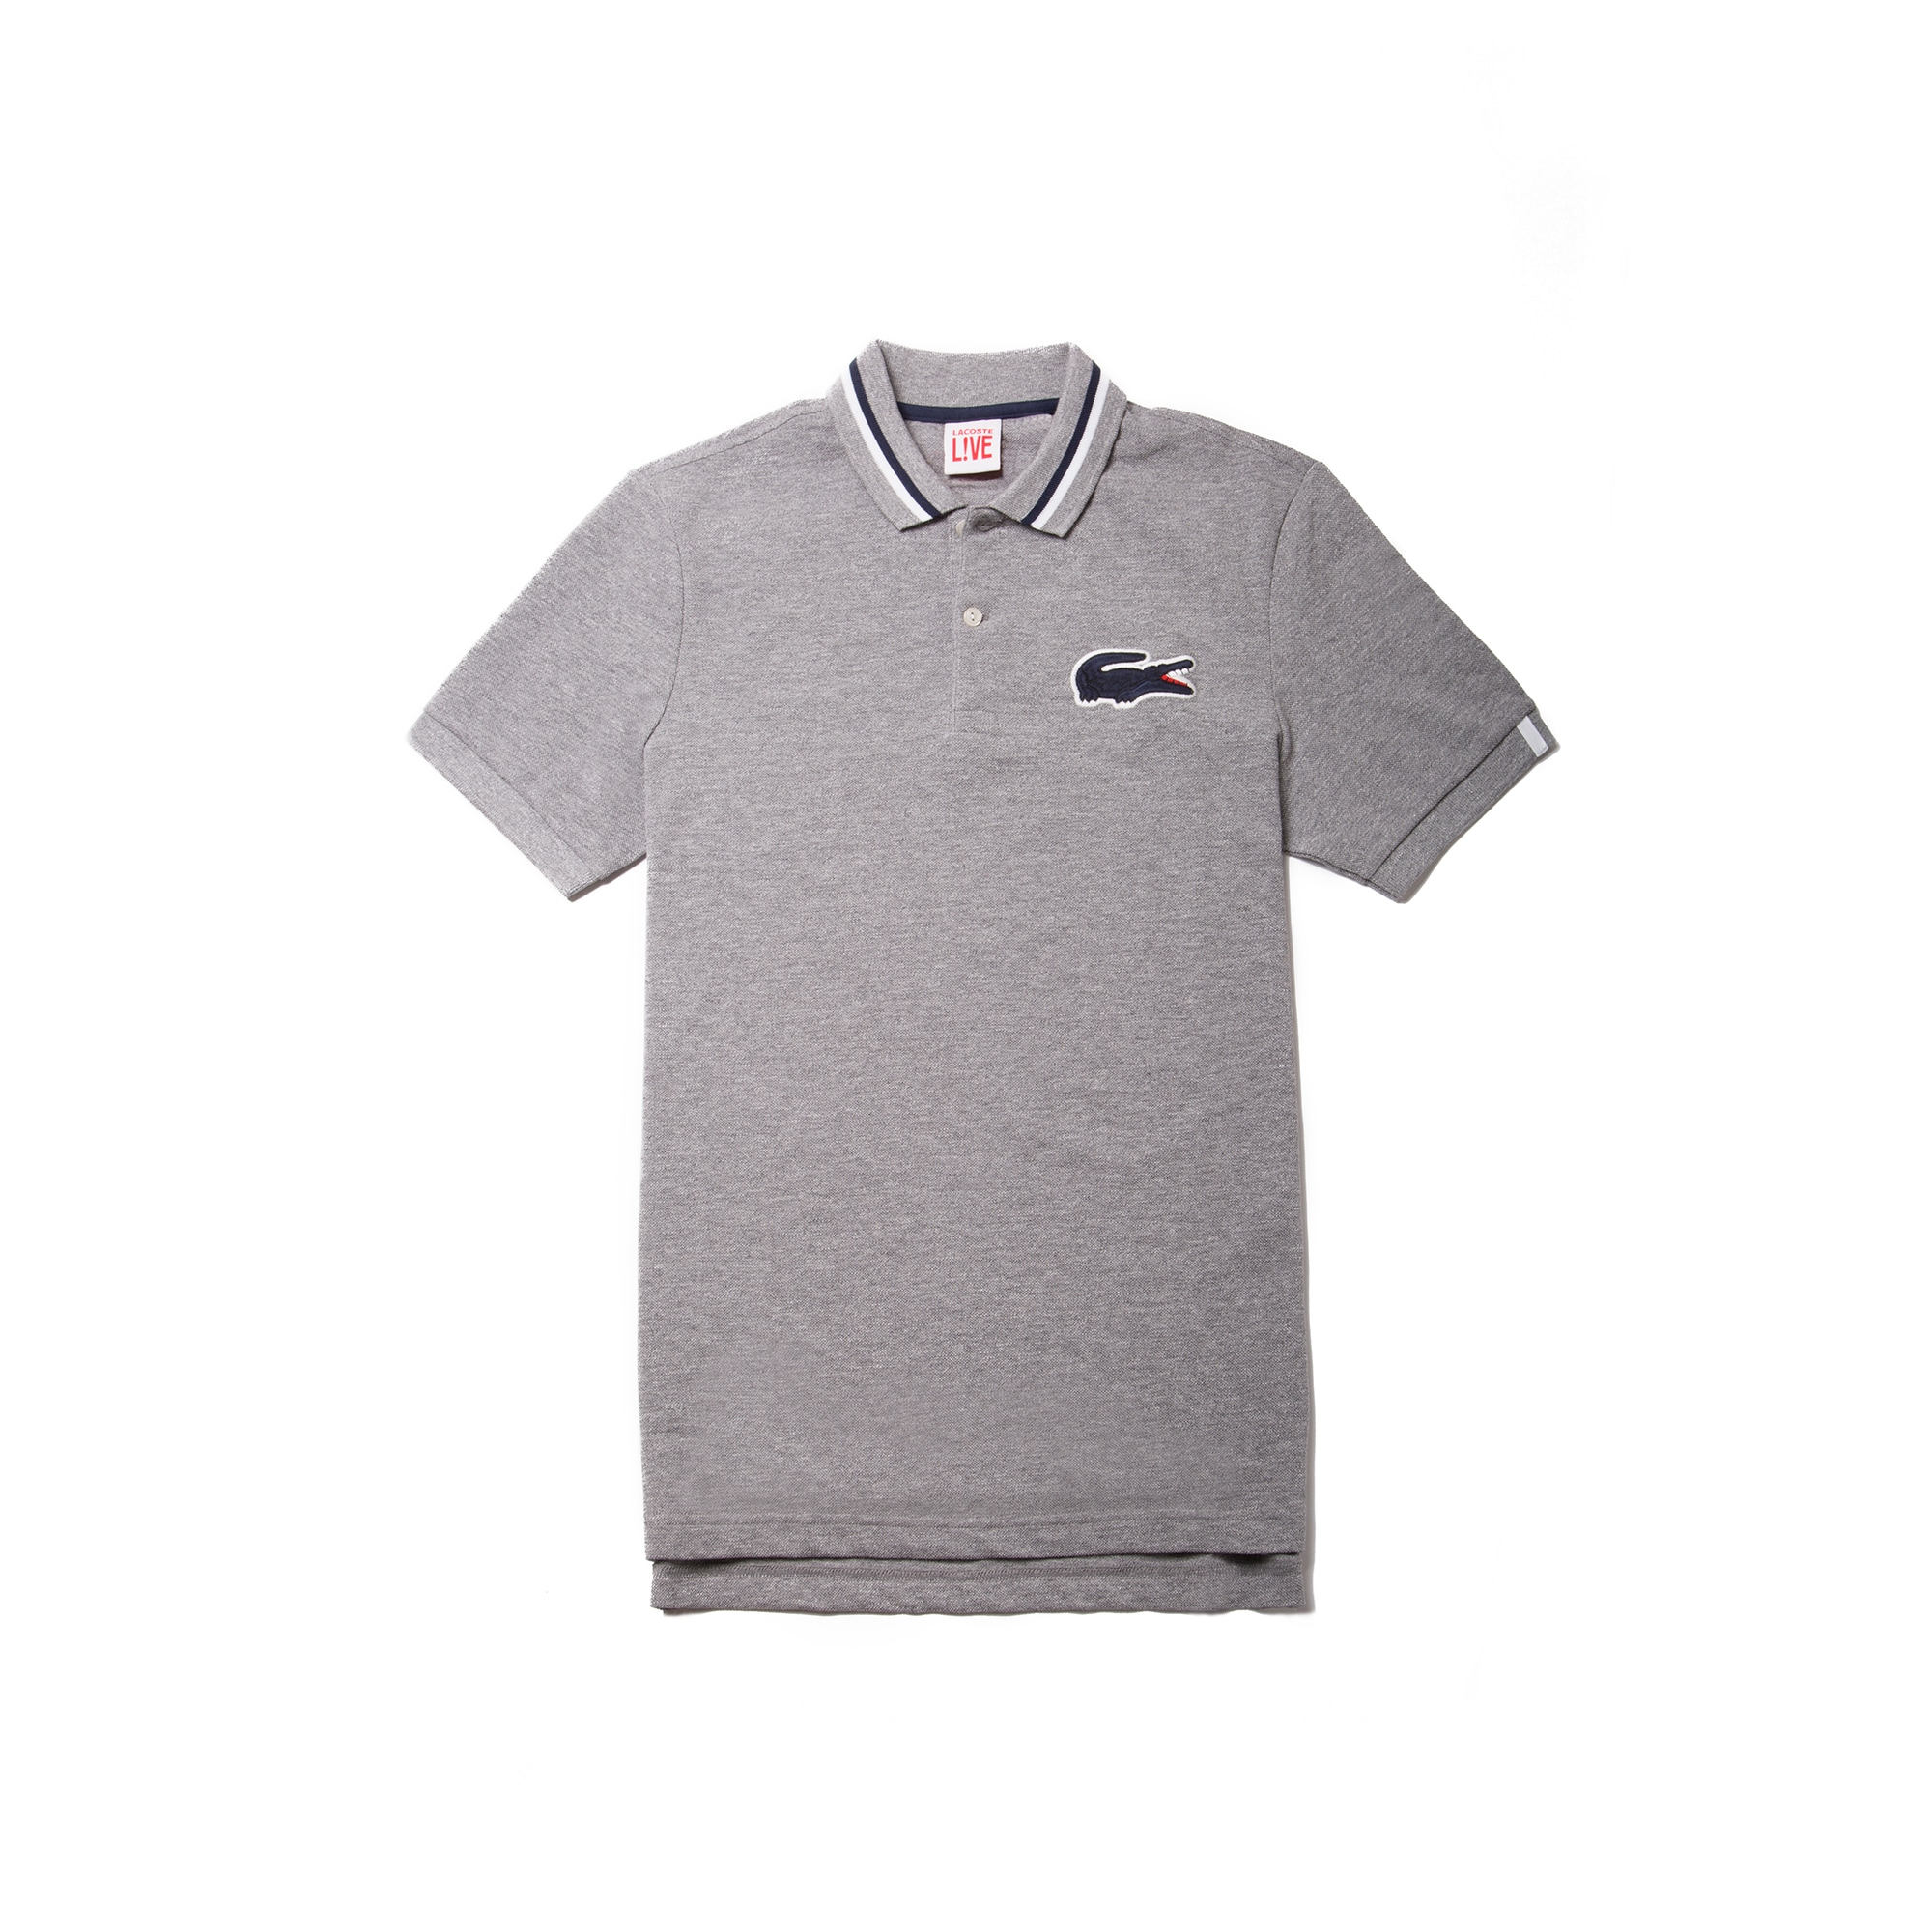 Men's  LIVE Regular Fit Piped Petit Piqué Polo